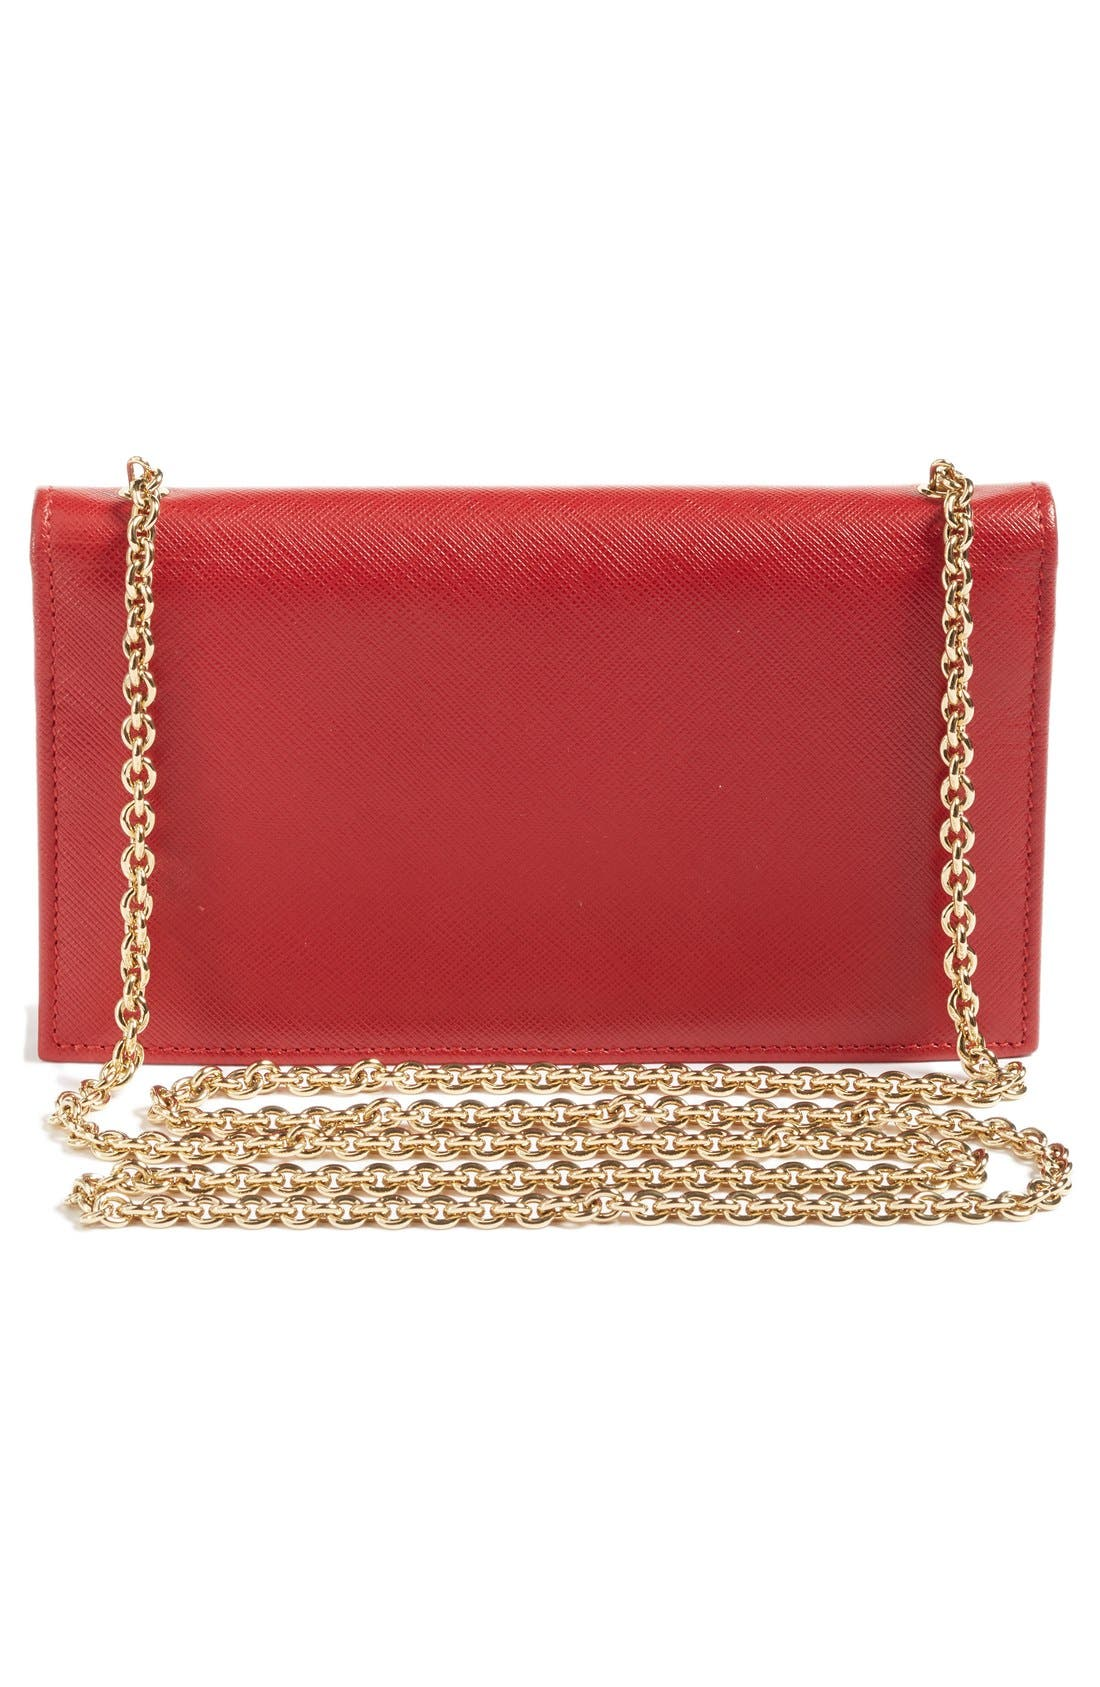 Salavatore Ferragamo Vara Leather Wallet on a Chain,                             Alternate thumbnail 3, color,                             Red